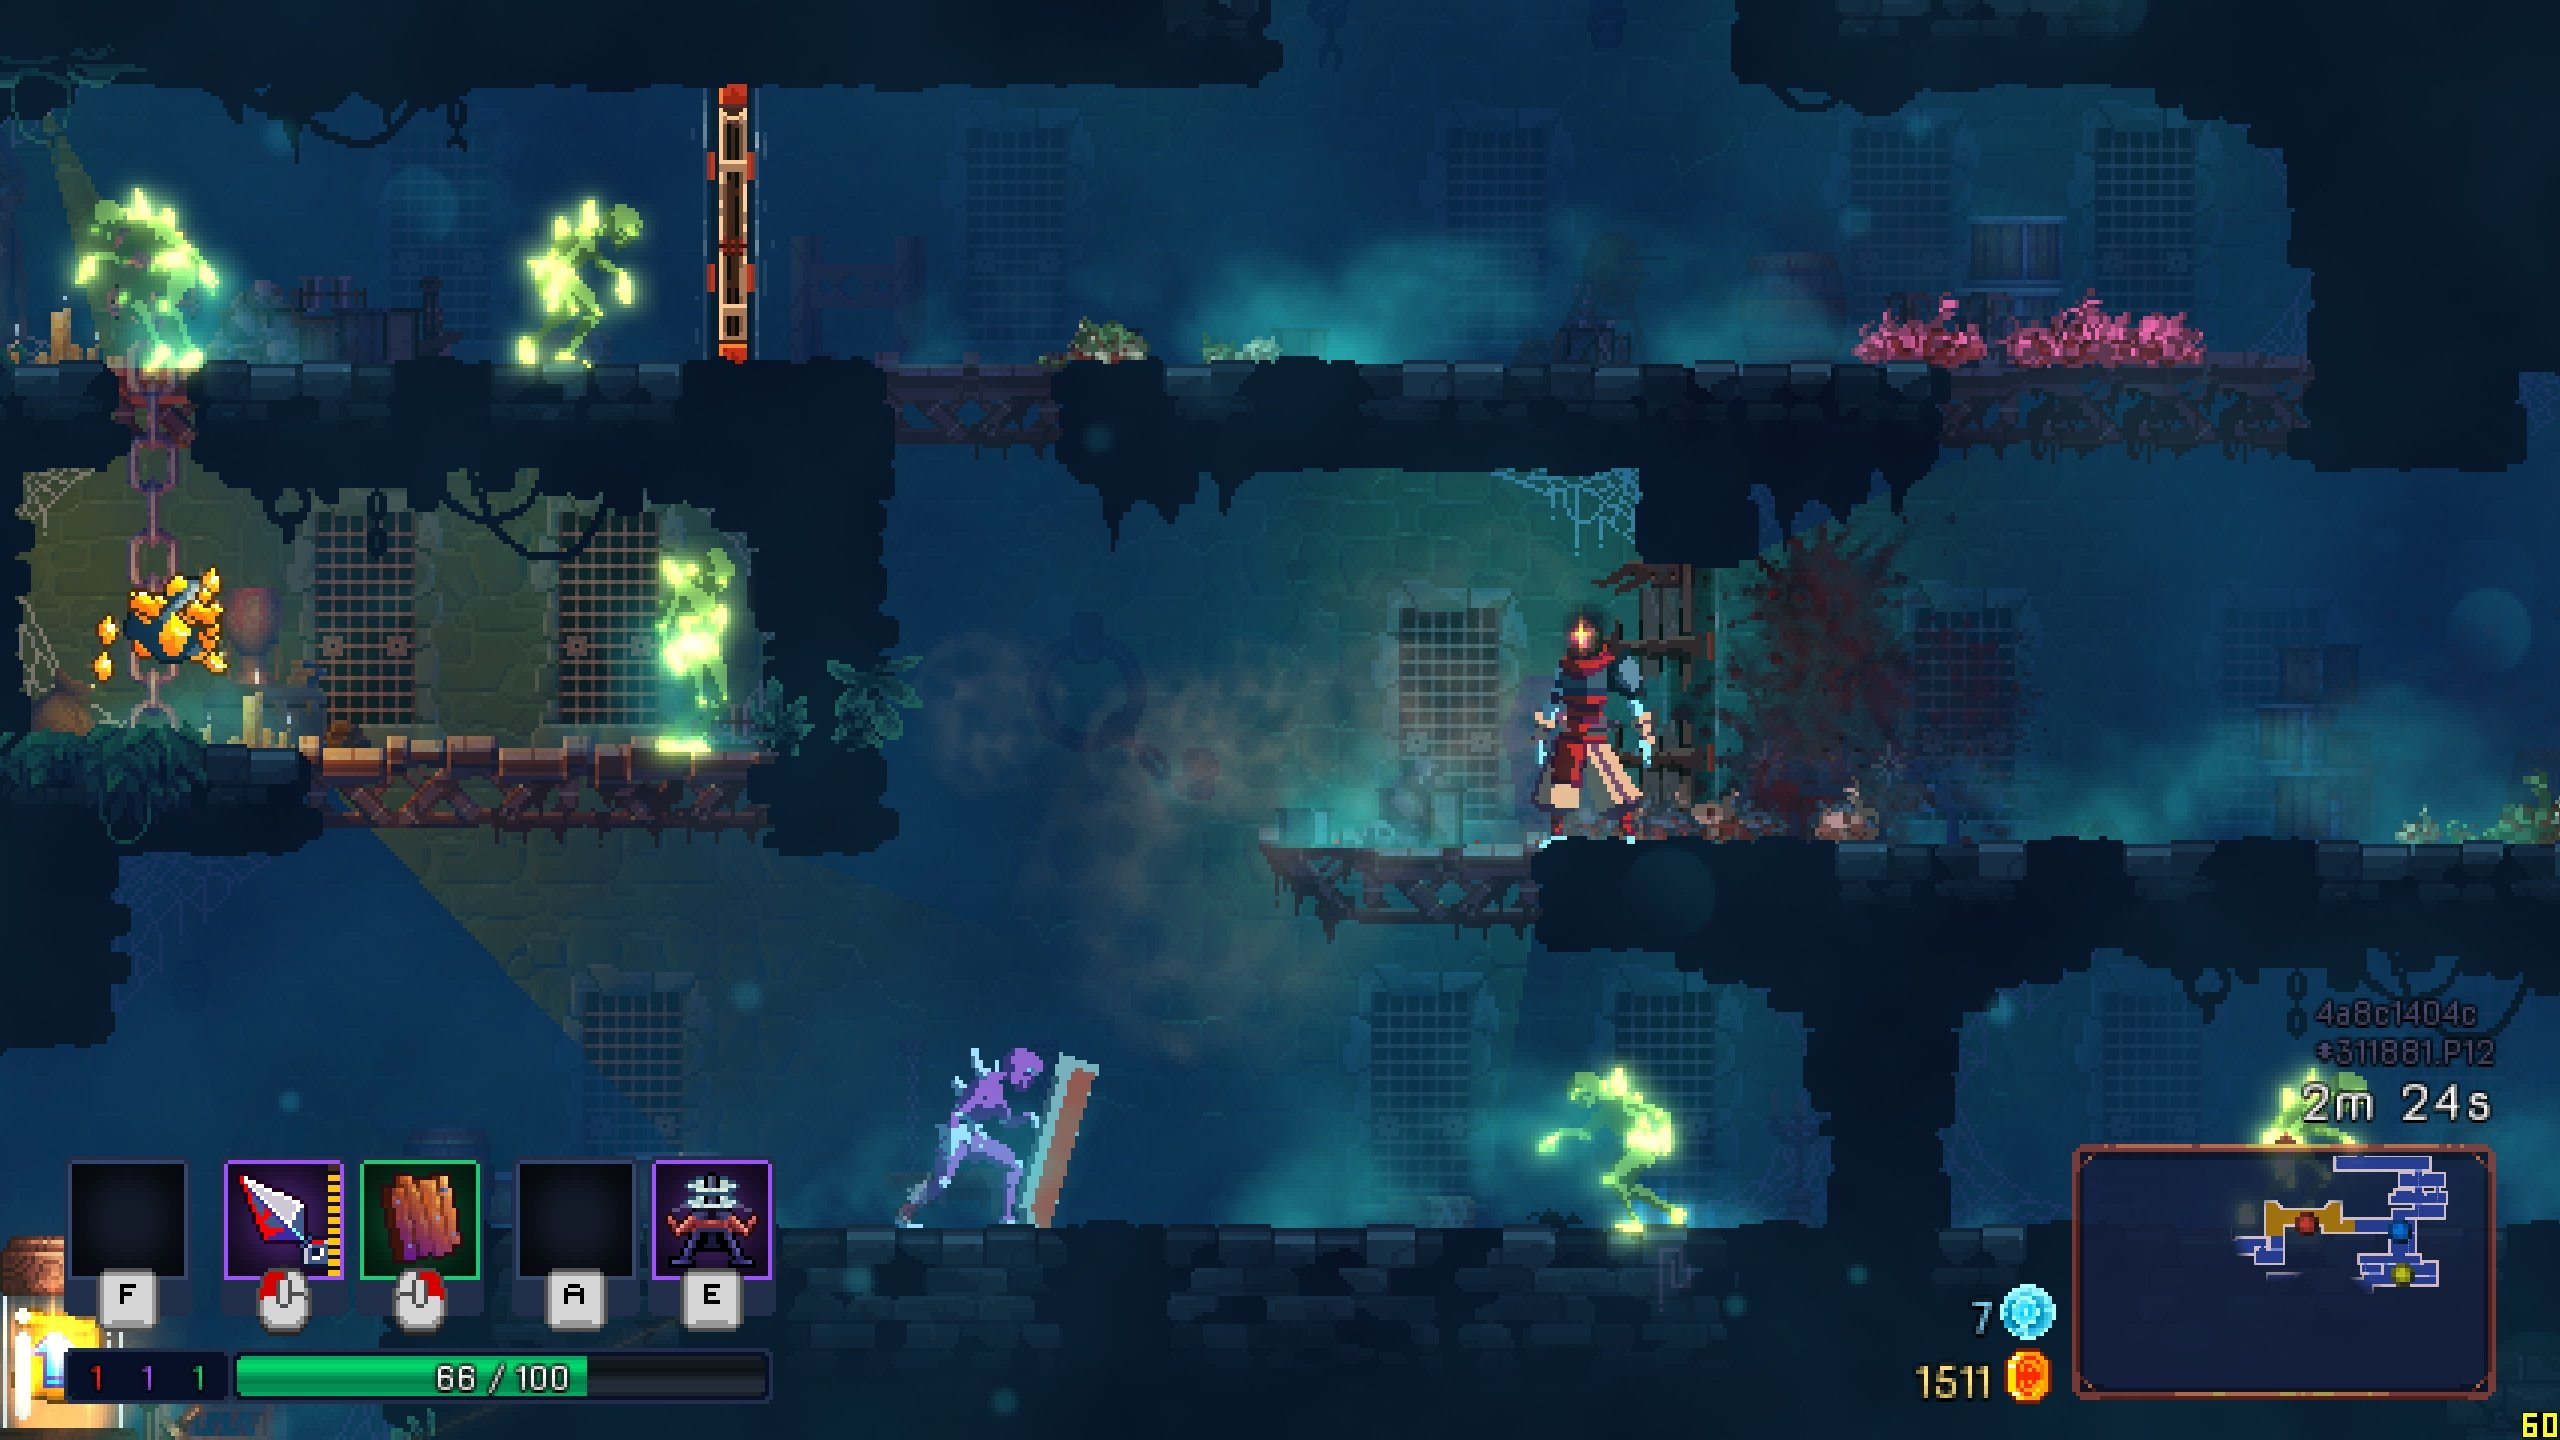 Dead Cells was developed and published by Motion Twin. (Credit: Motion Twin)